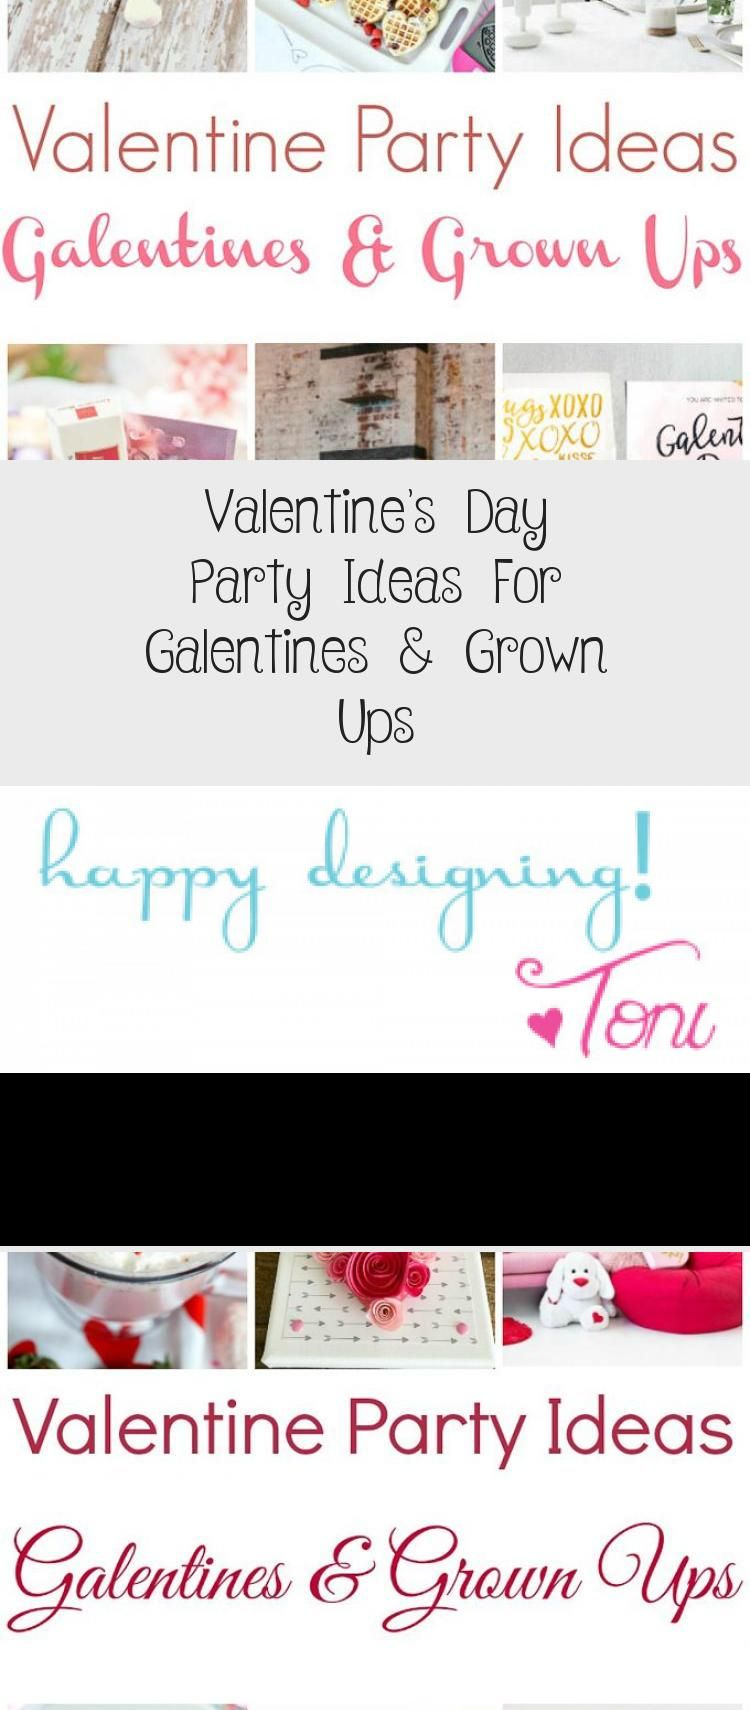 Valentine's Day Party Ideas For Galentines & Grown Ups – Valentines